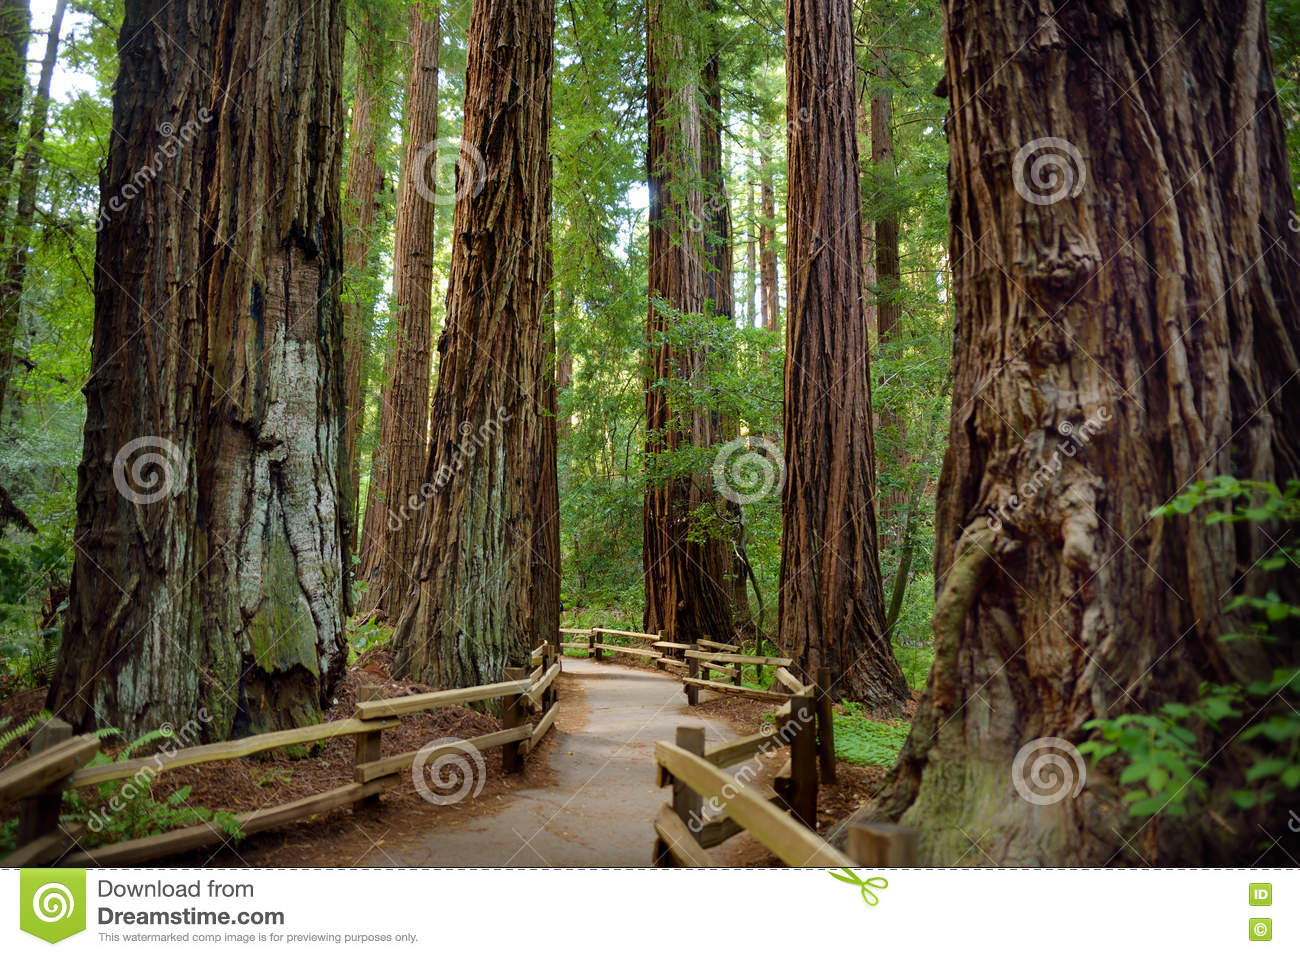 Hiking Trails Through Giant Redwoods In Muir Forest Near San